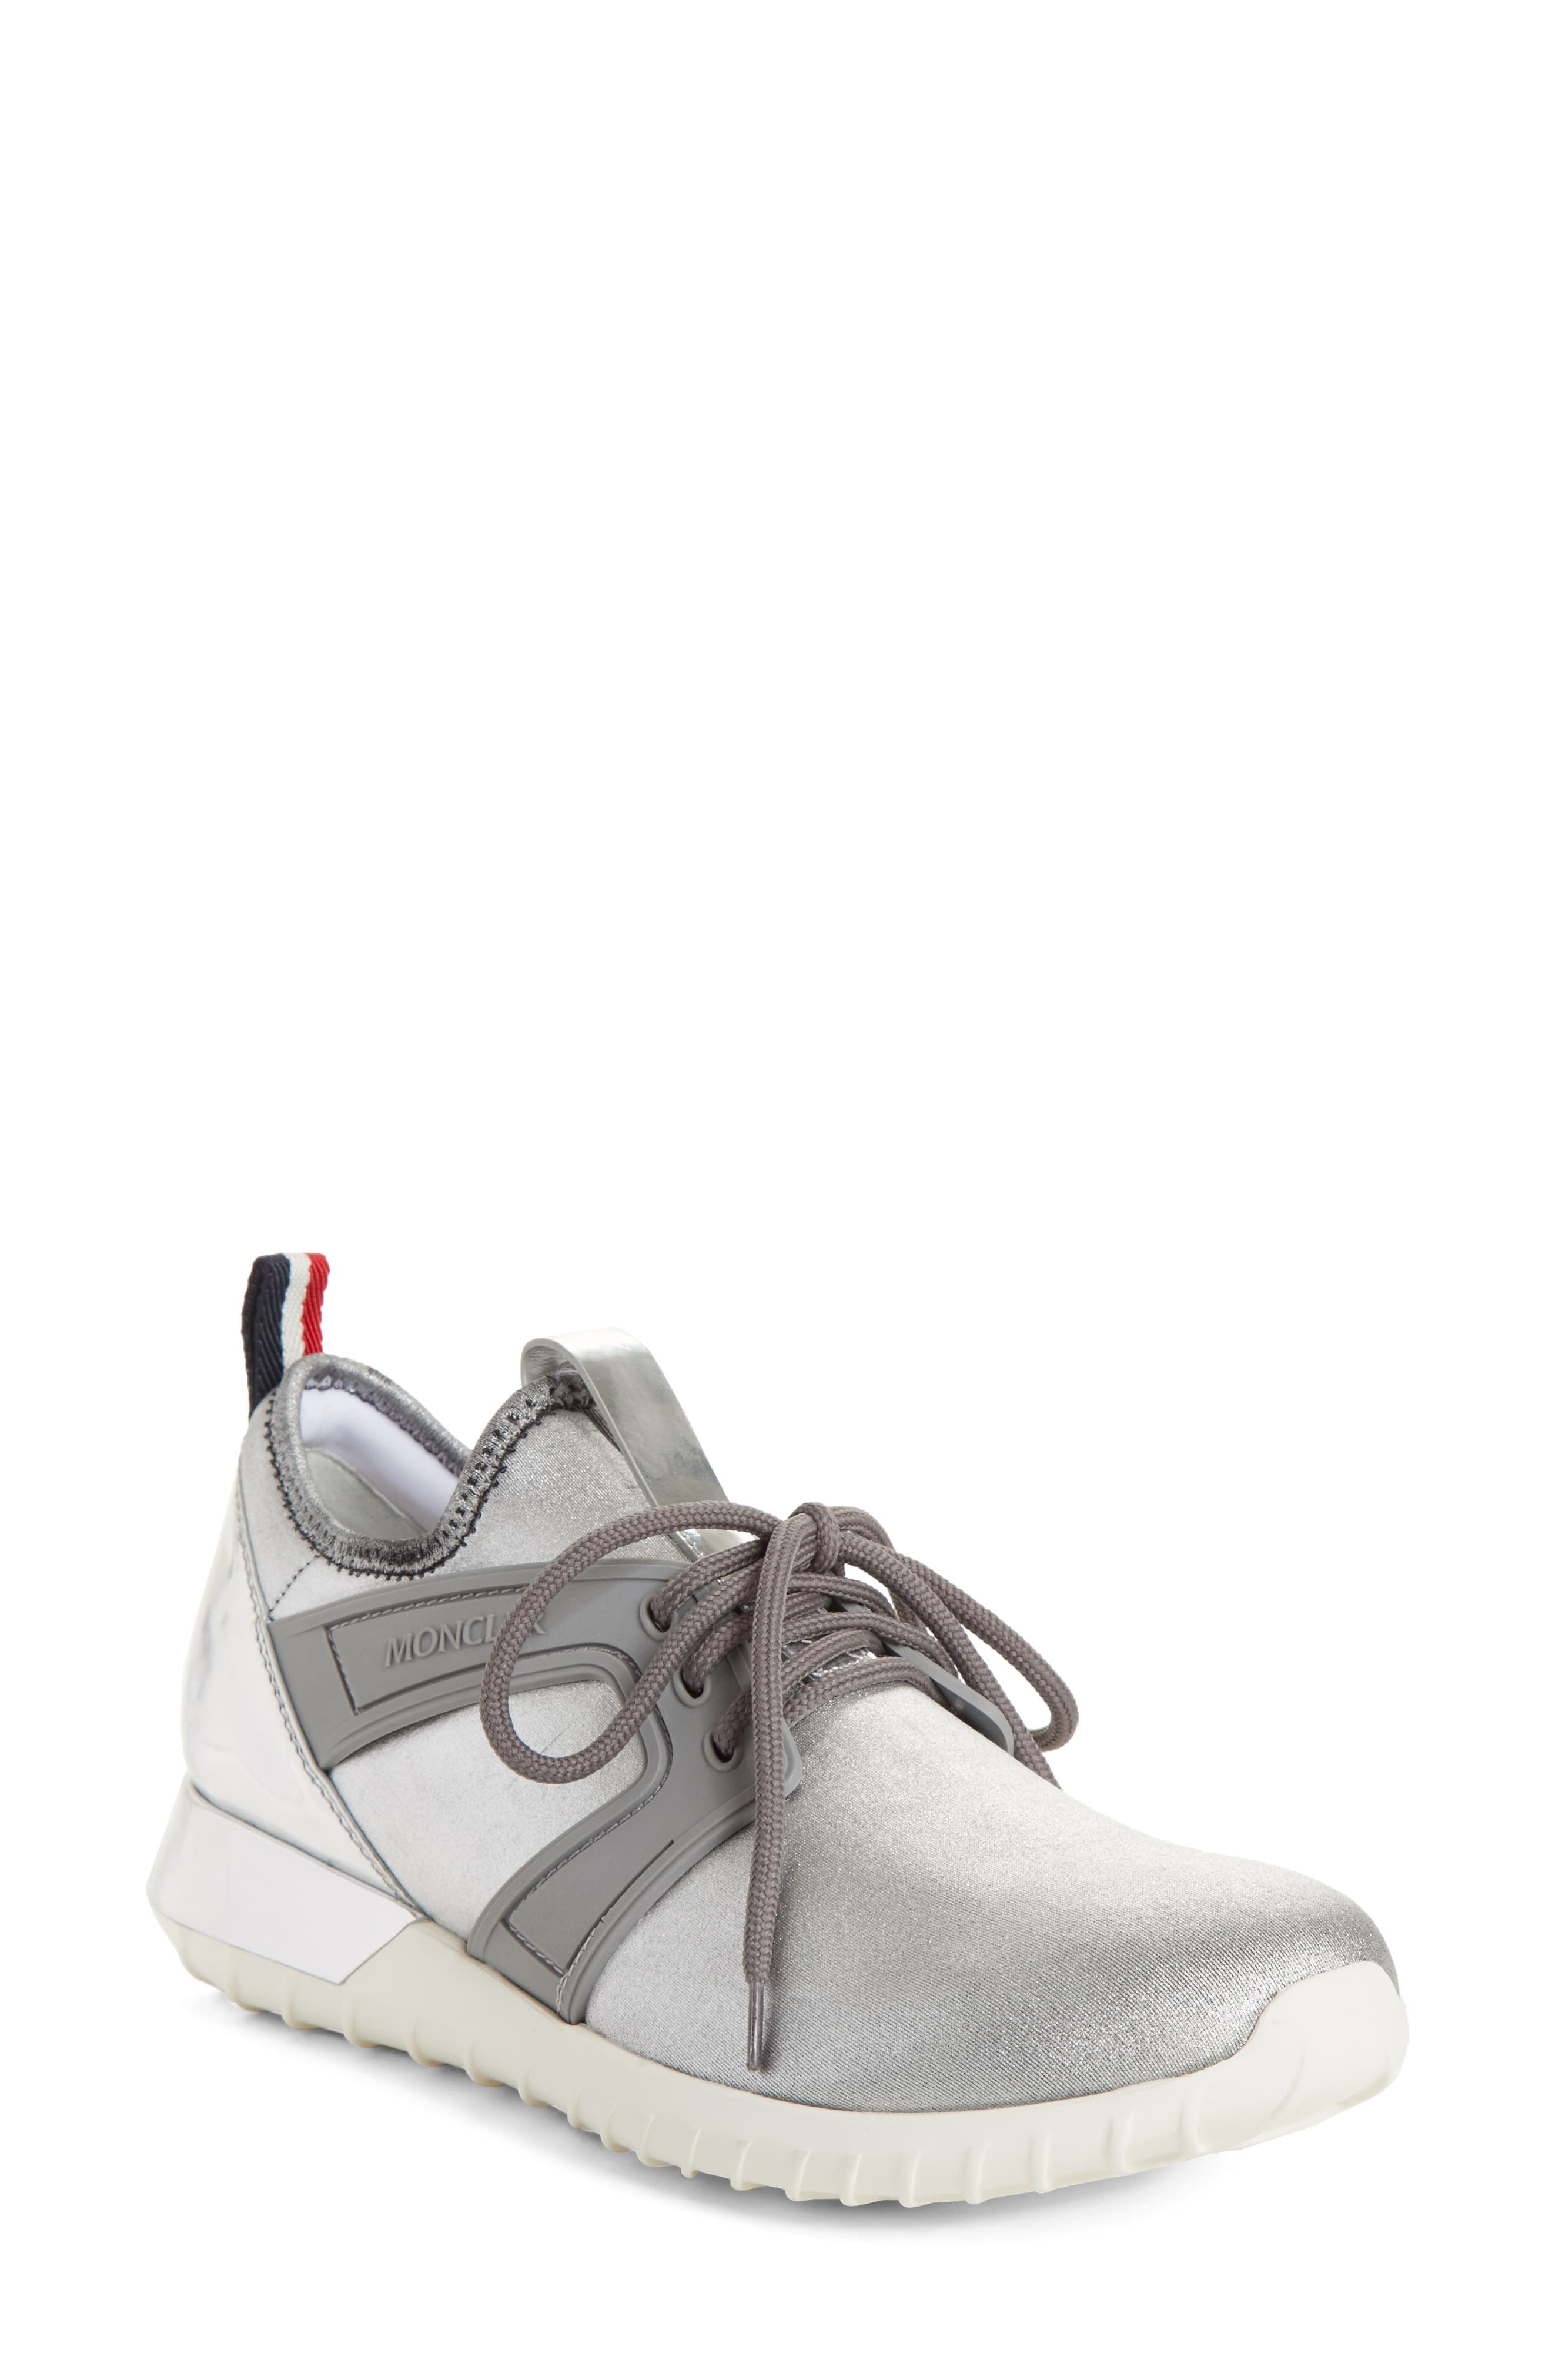 Meline Runner Sneaker,                         Main,                         color, 044